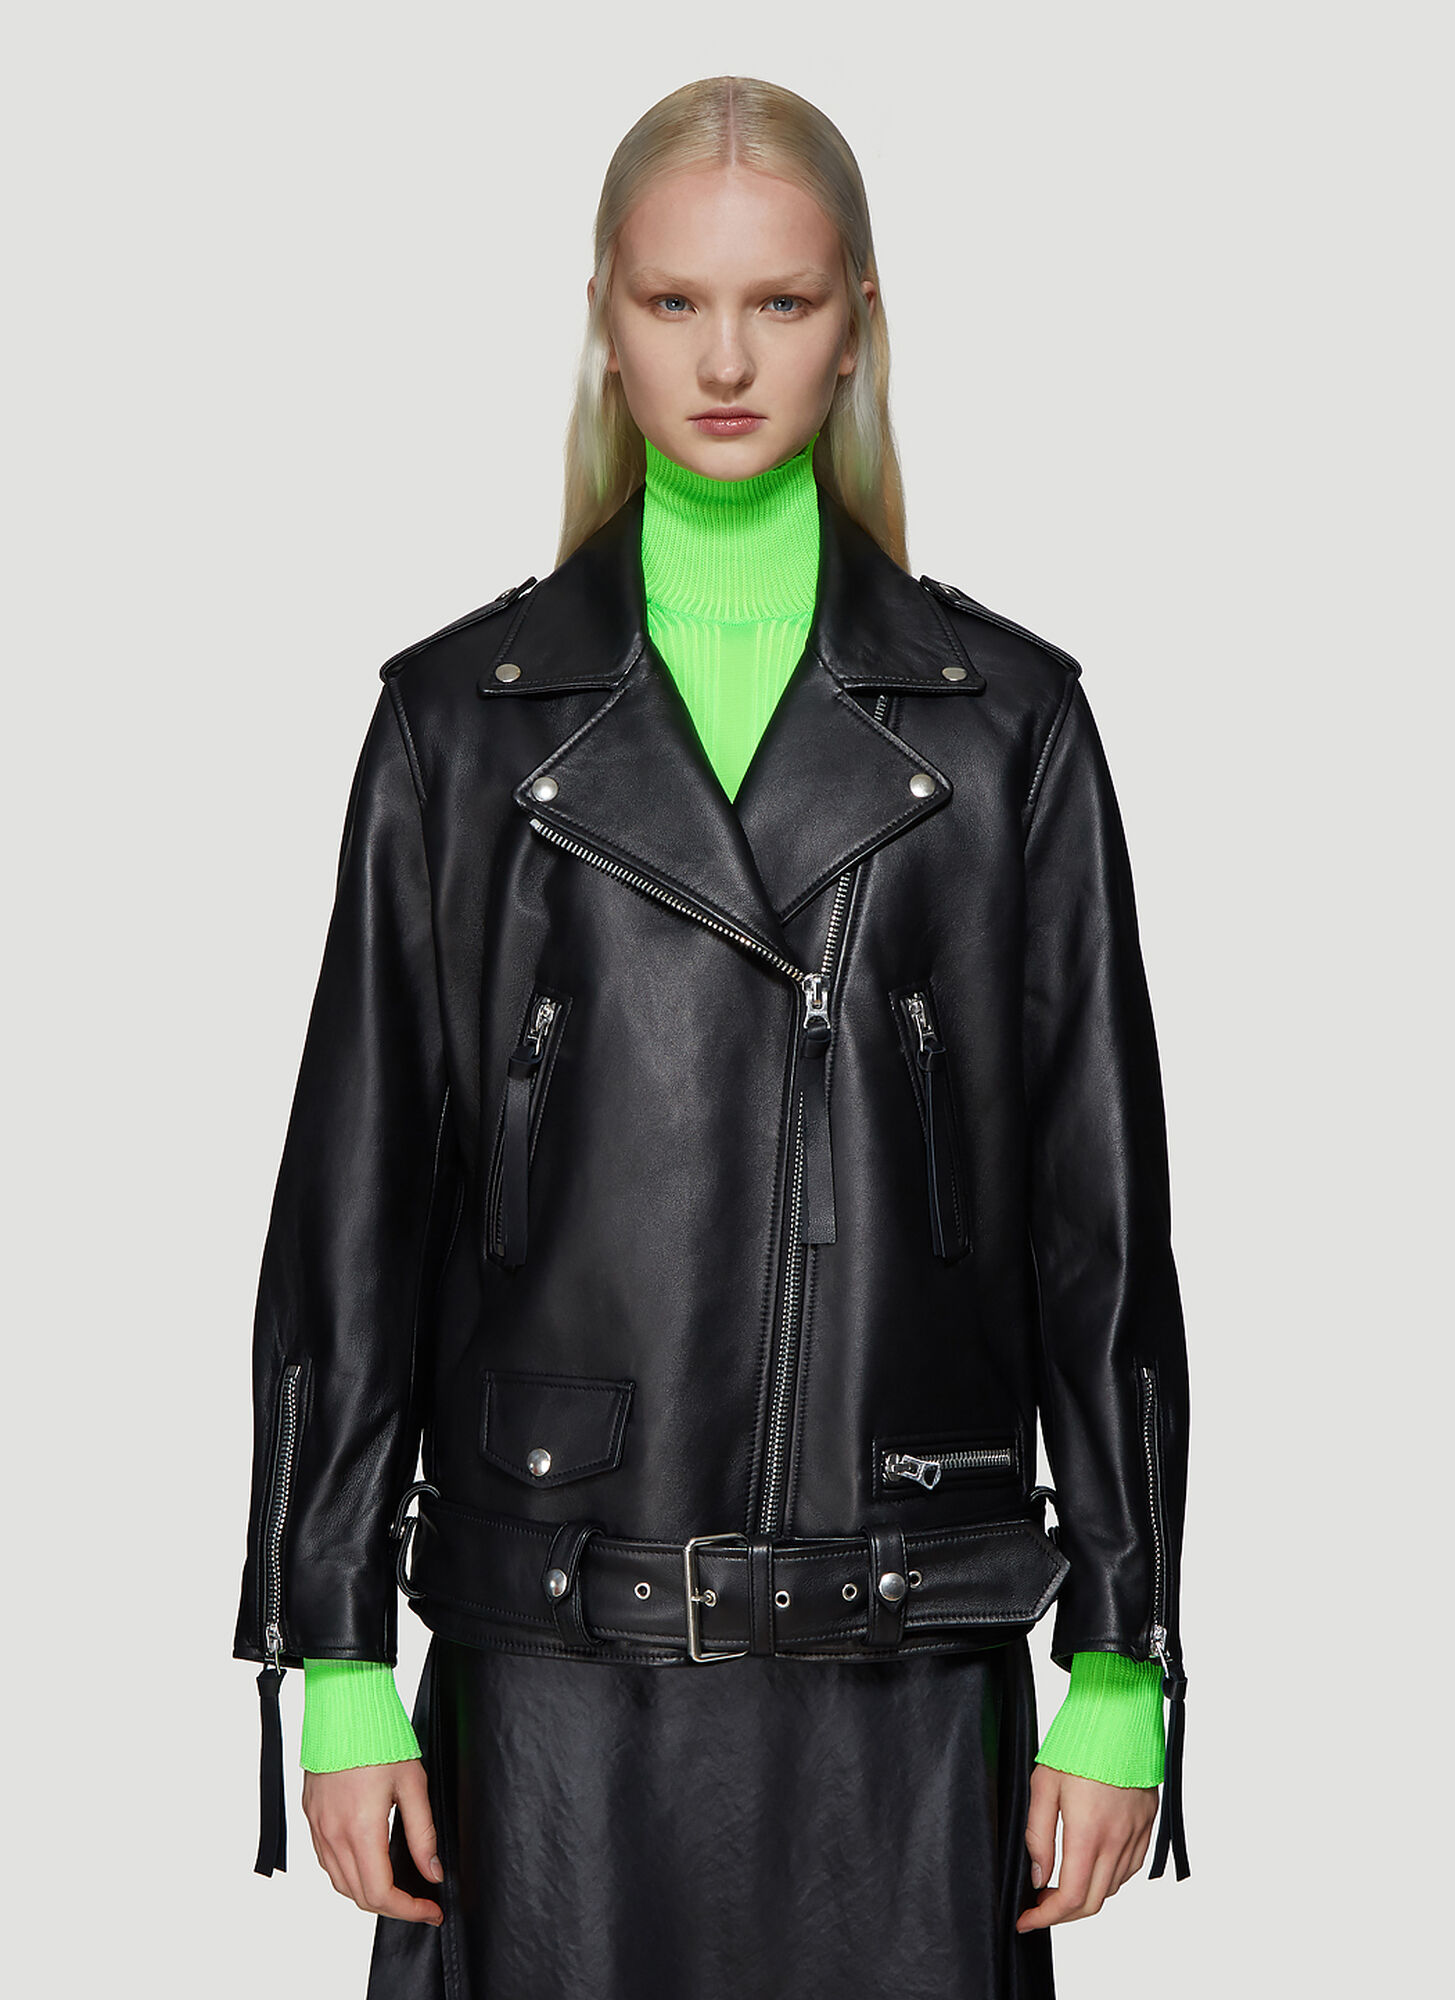 Acne Studios Myrtle Leather Jacket in Black